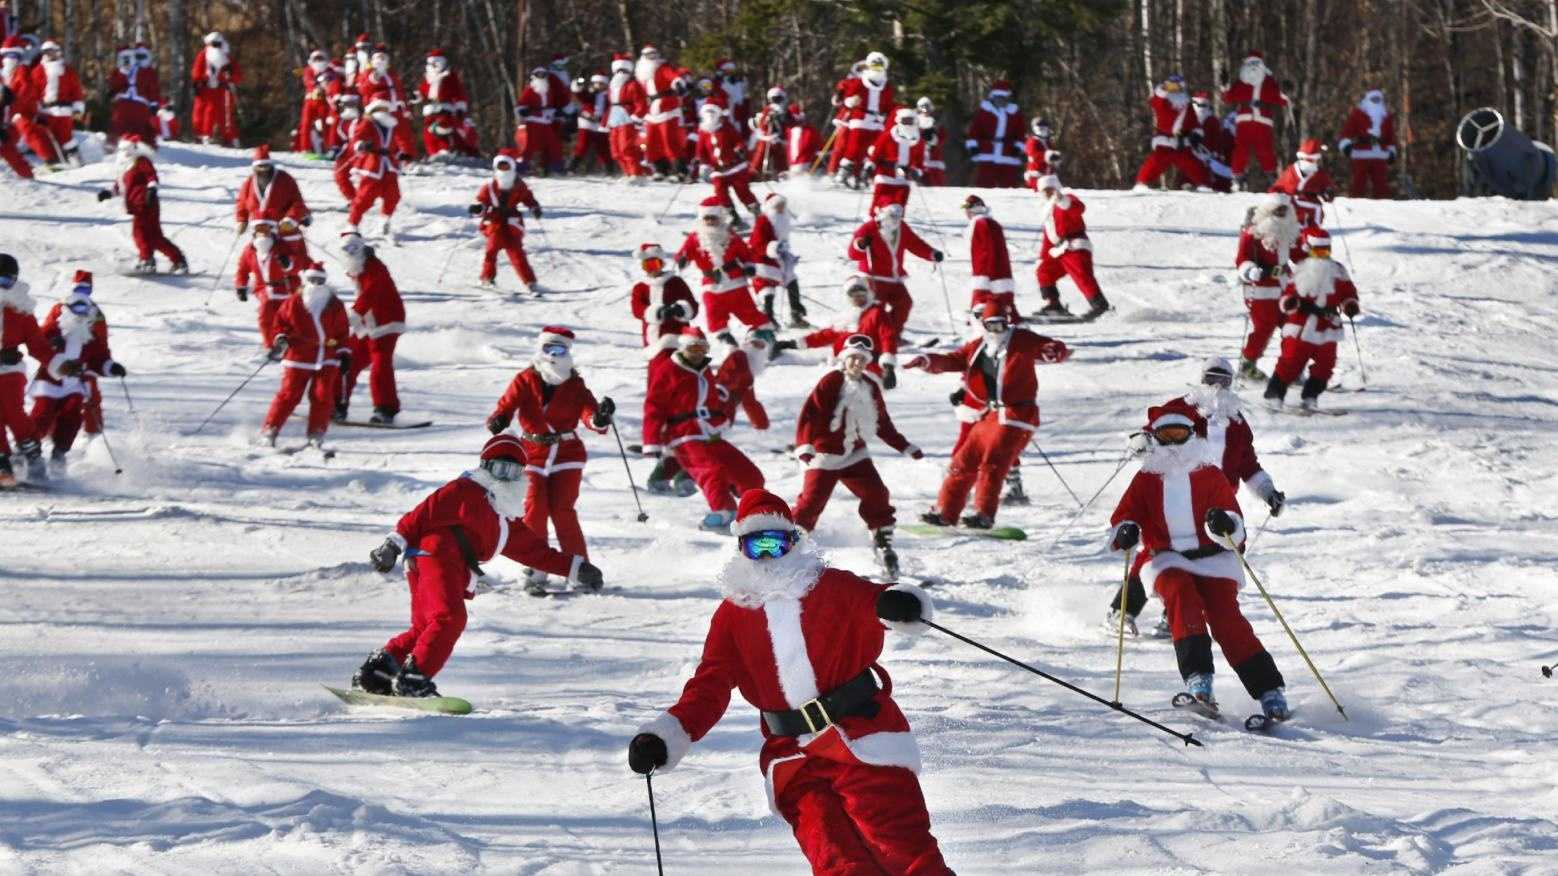 Skiers and snowboarders dressed as Santa take a run en masse at the Sunday River ski resort, Sunday, Dec. 6, 2015, in Newry, Maine. Skiers with full Santa outfits got free lift tickets for donating $15 to the Sunday River Community Fund.